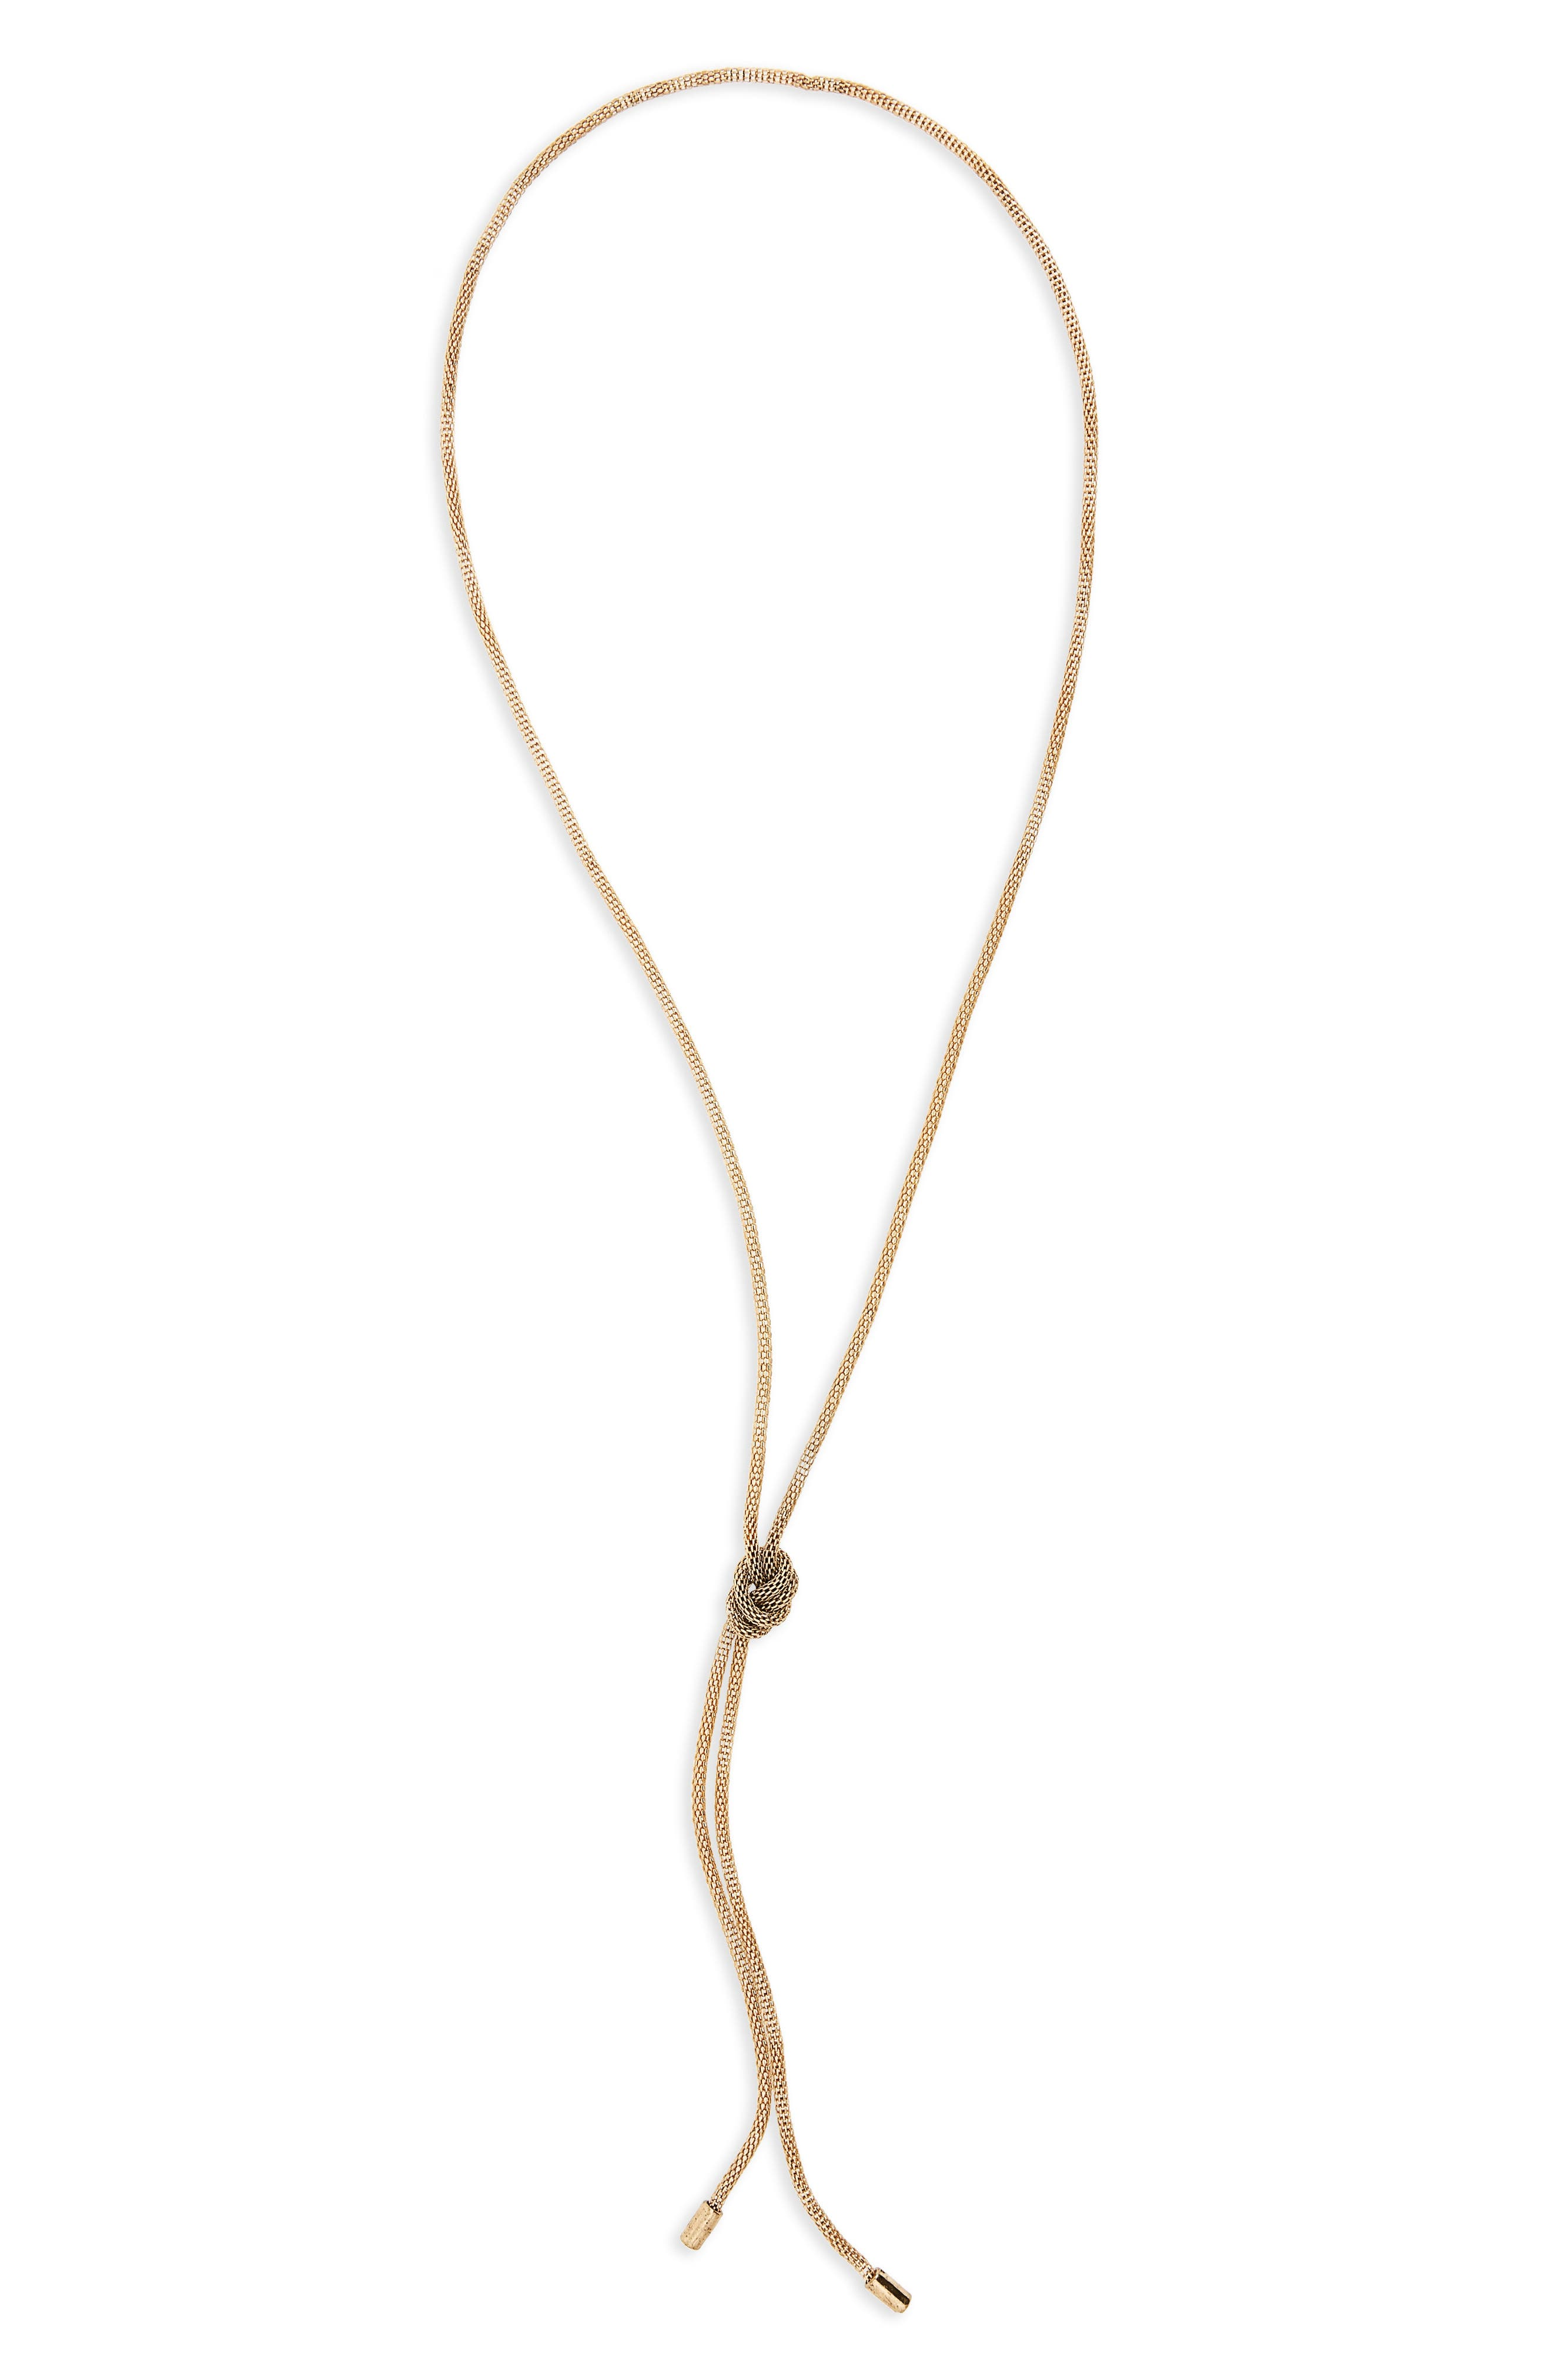 Knotted Rope Chain Necklace,                         Main,                         color, Gold